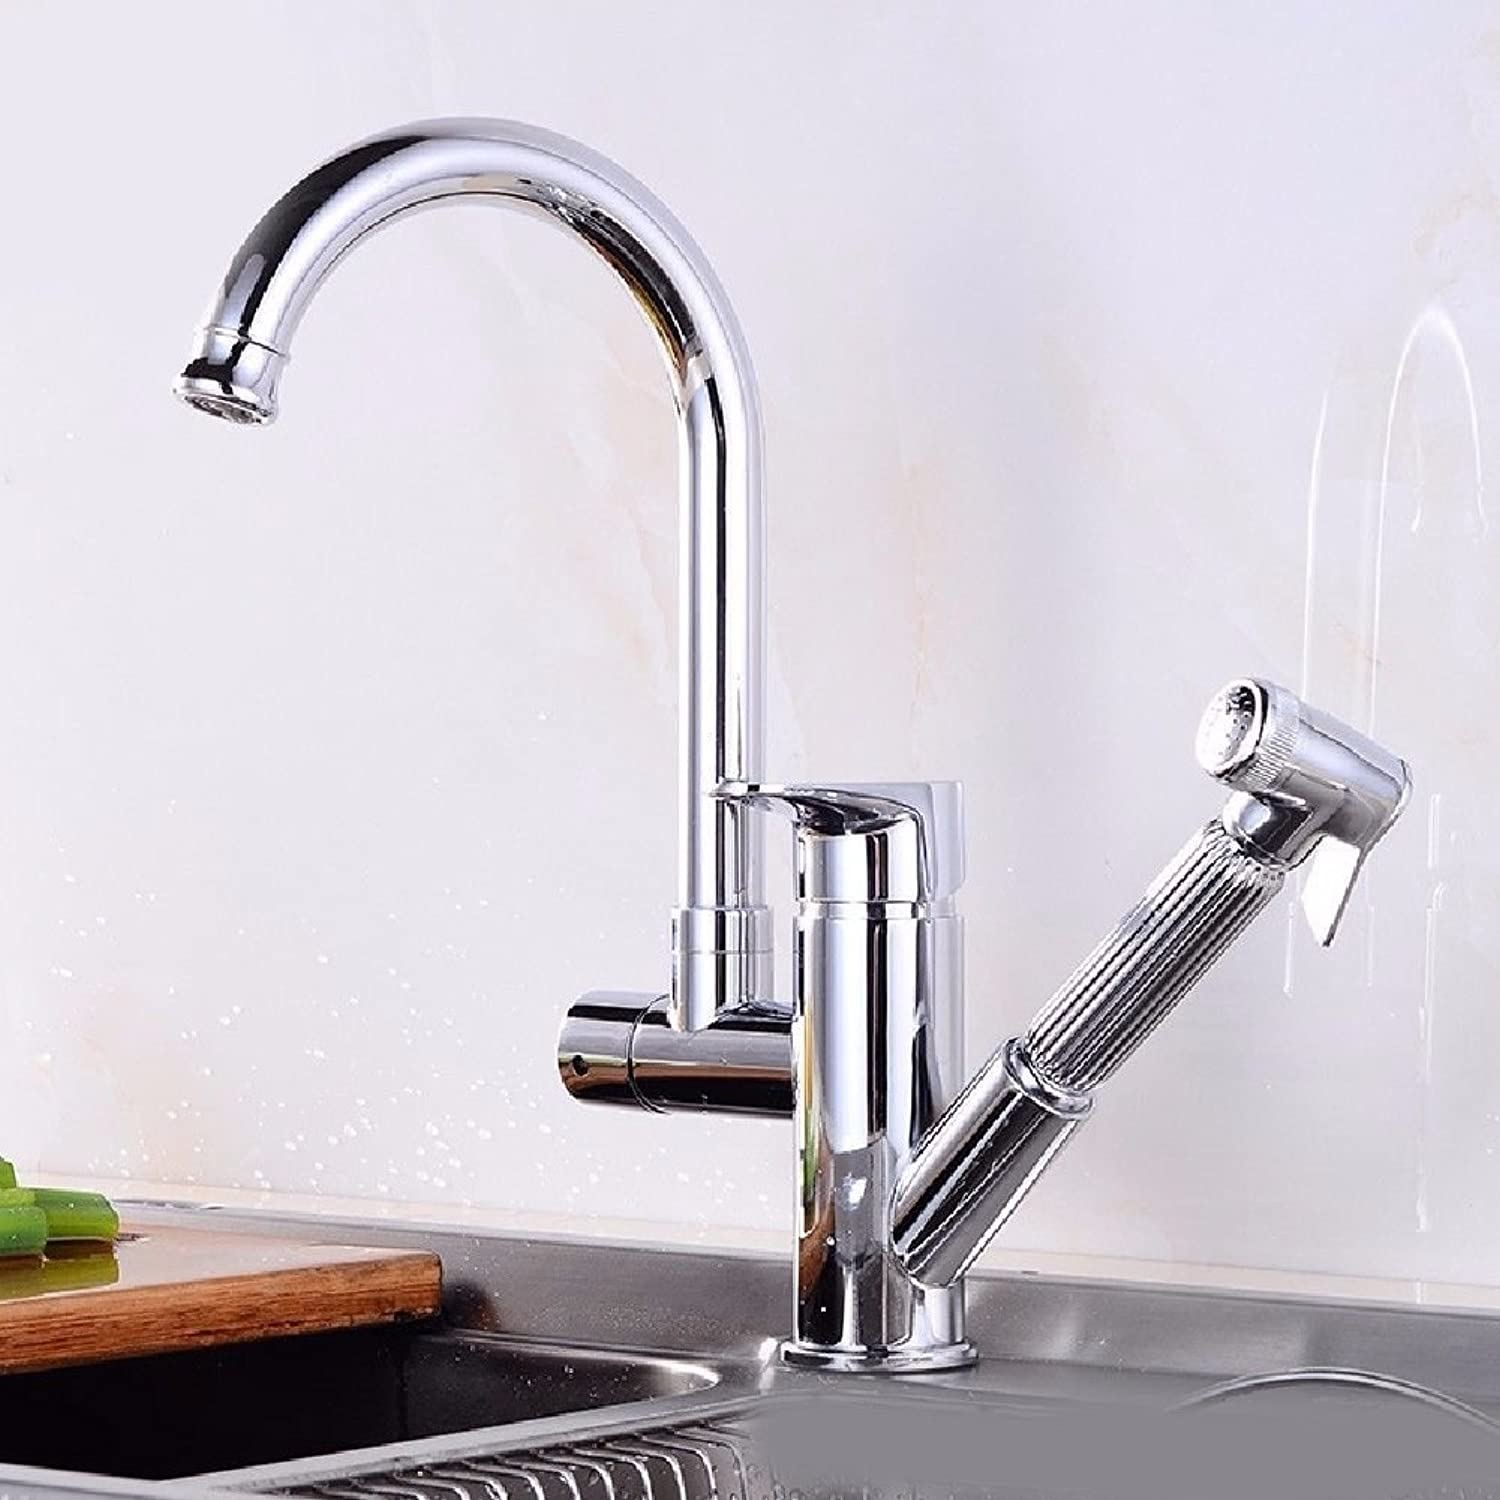 Commercial Single Lever Pull Down Kitchen Sink Faucet Brass Constructed Polished Full Copper redatable Kitchen Multi-Function Sink Sink Hot and Cold Faucet